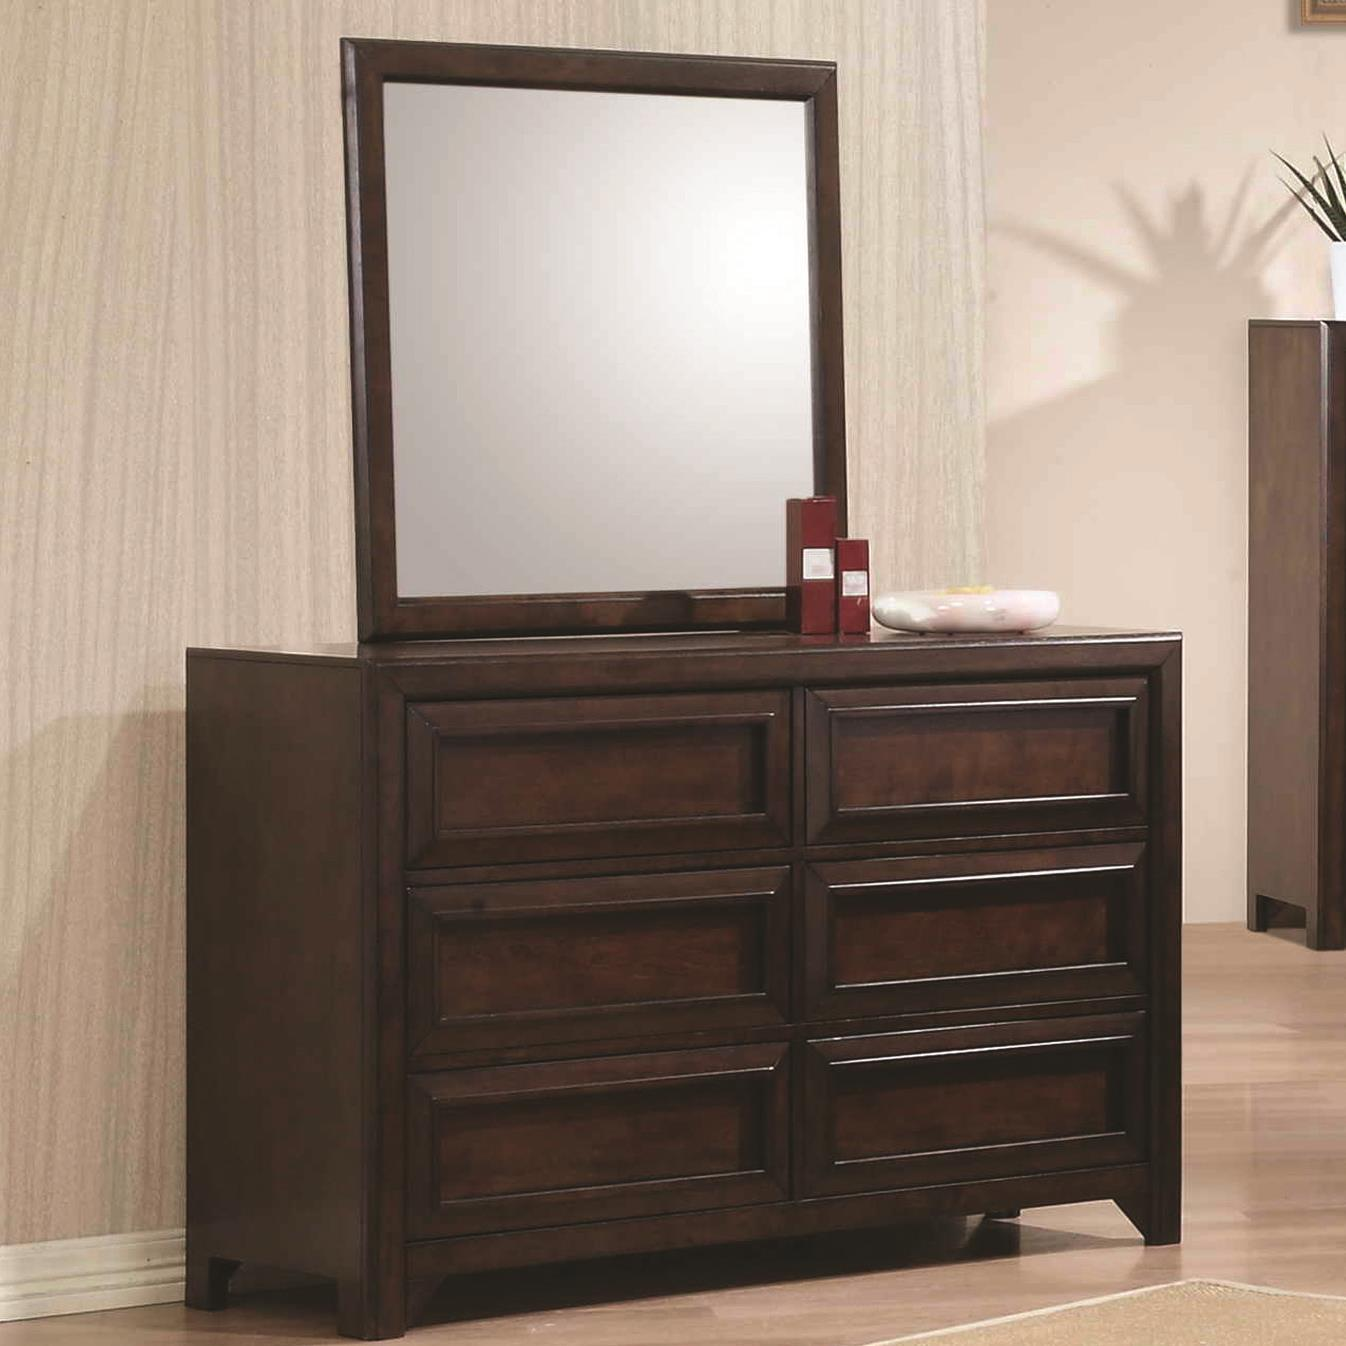 Coaster Greenough Dresser and Mirror - Item Number: 400823+400824